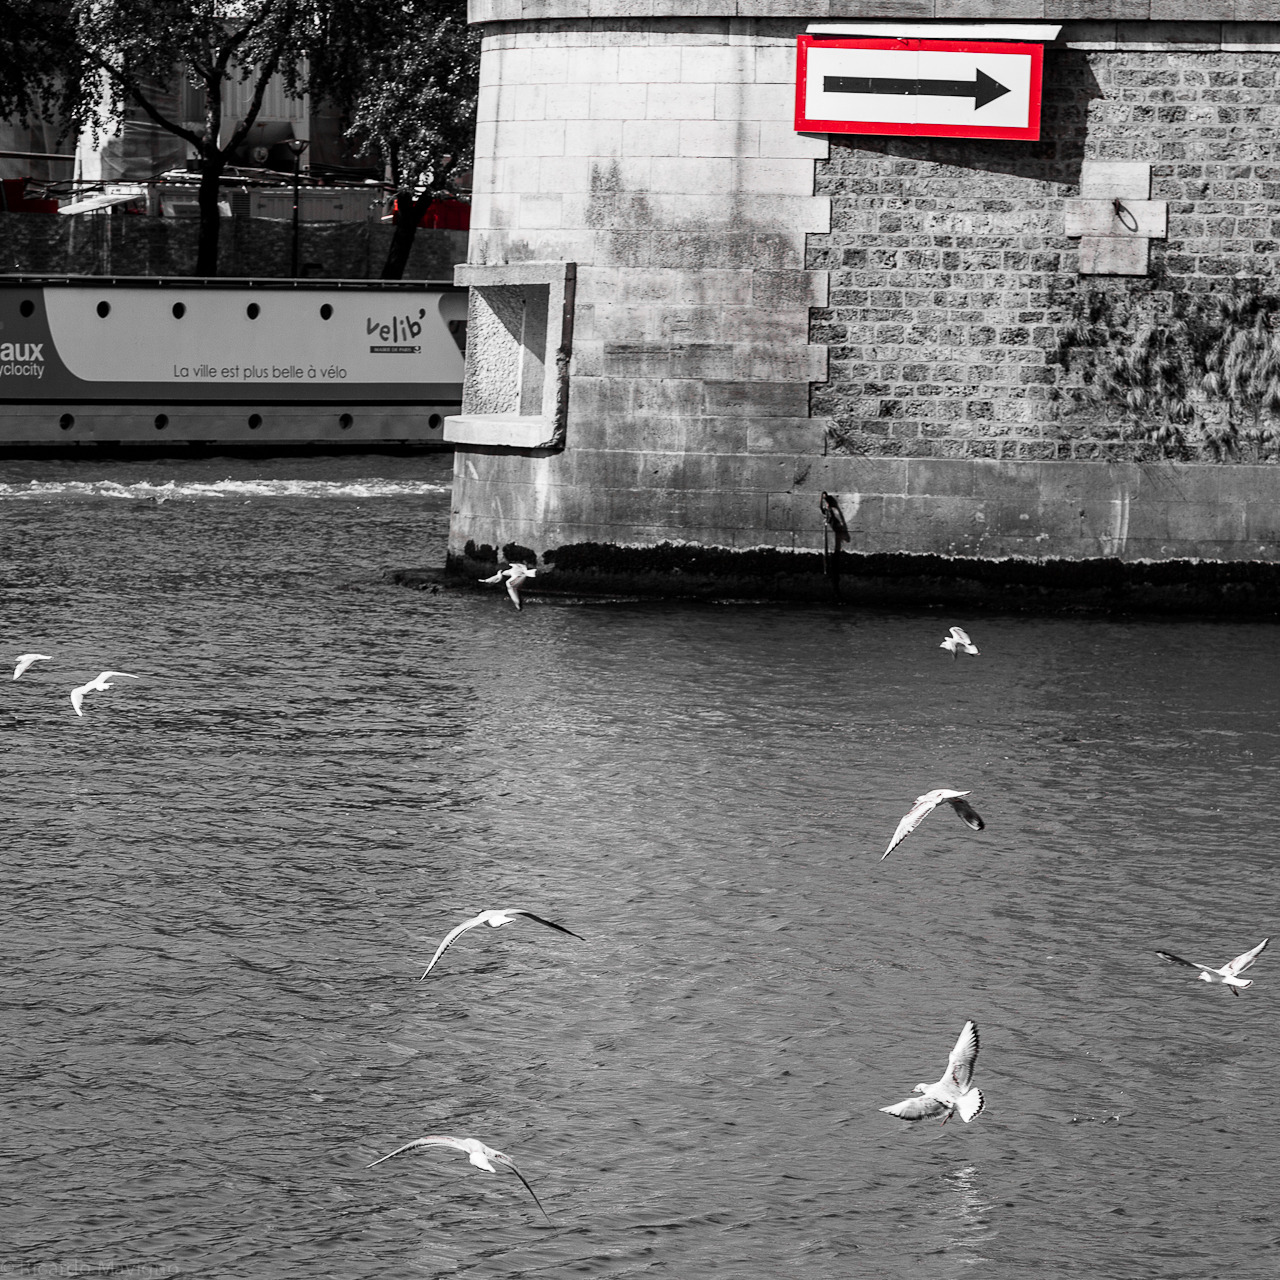 Paris 08 - Doves don't read signs :-)  by Ricardo Mavigno